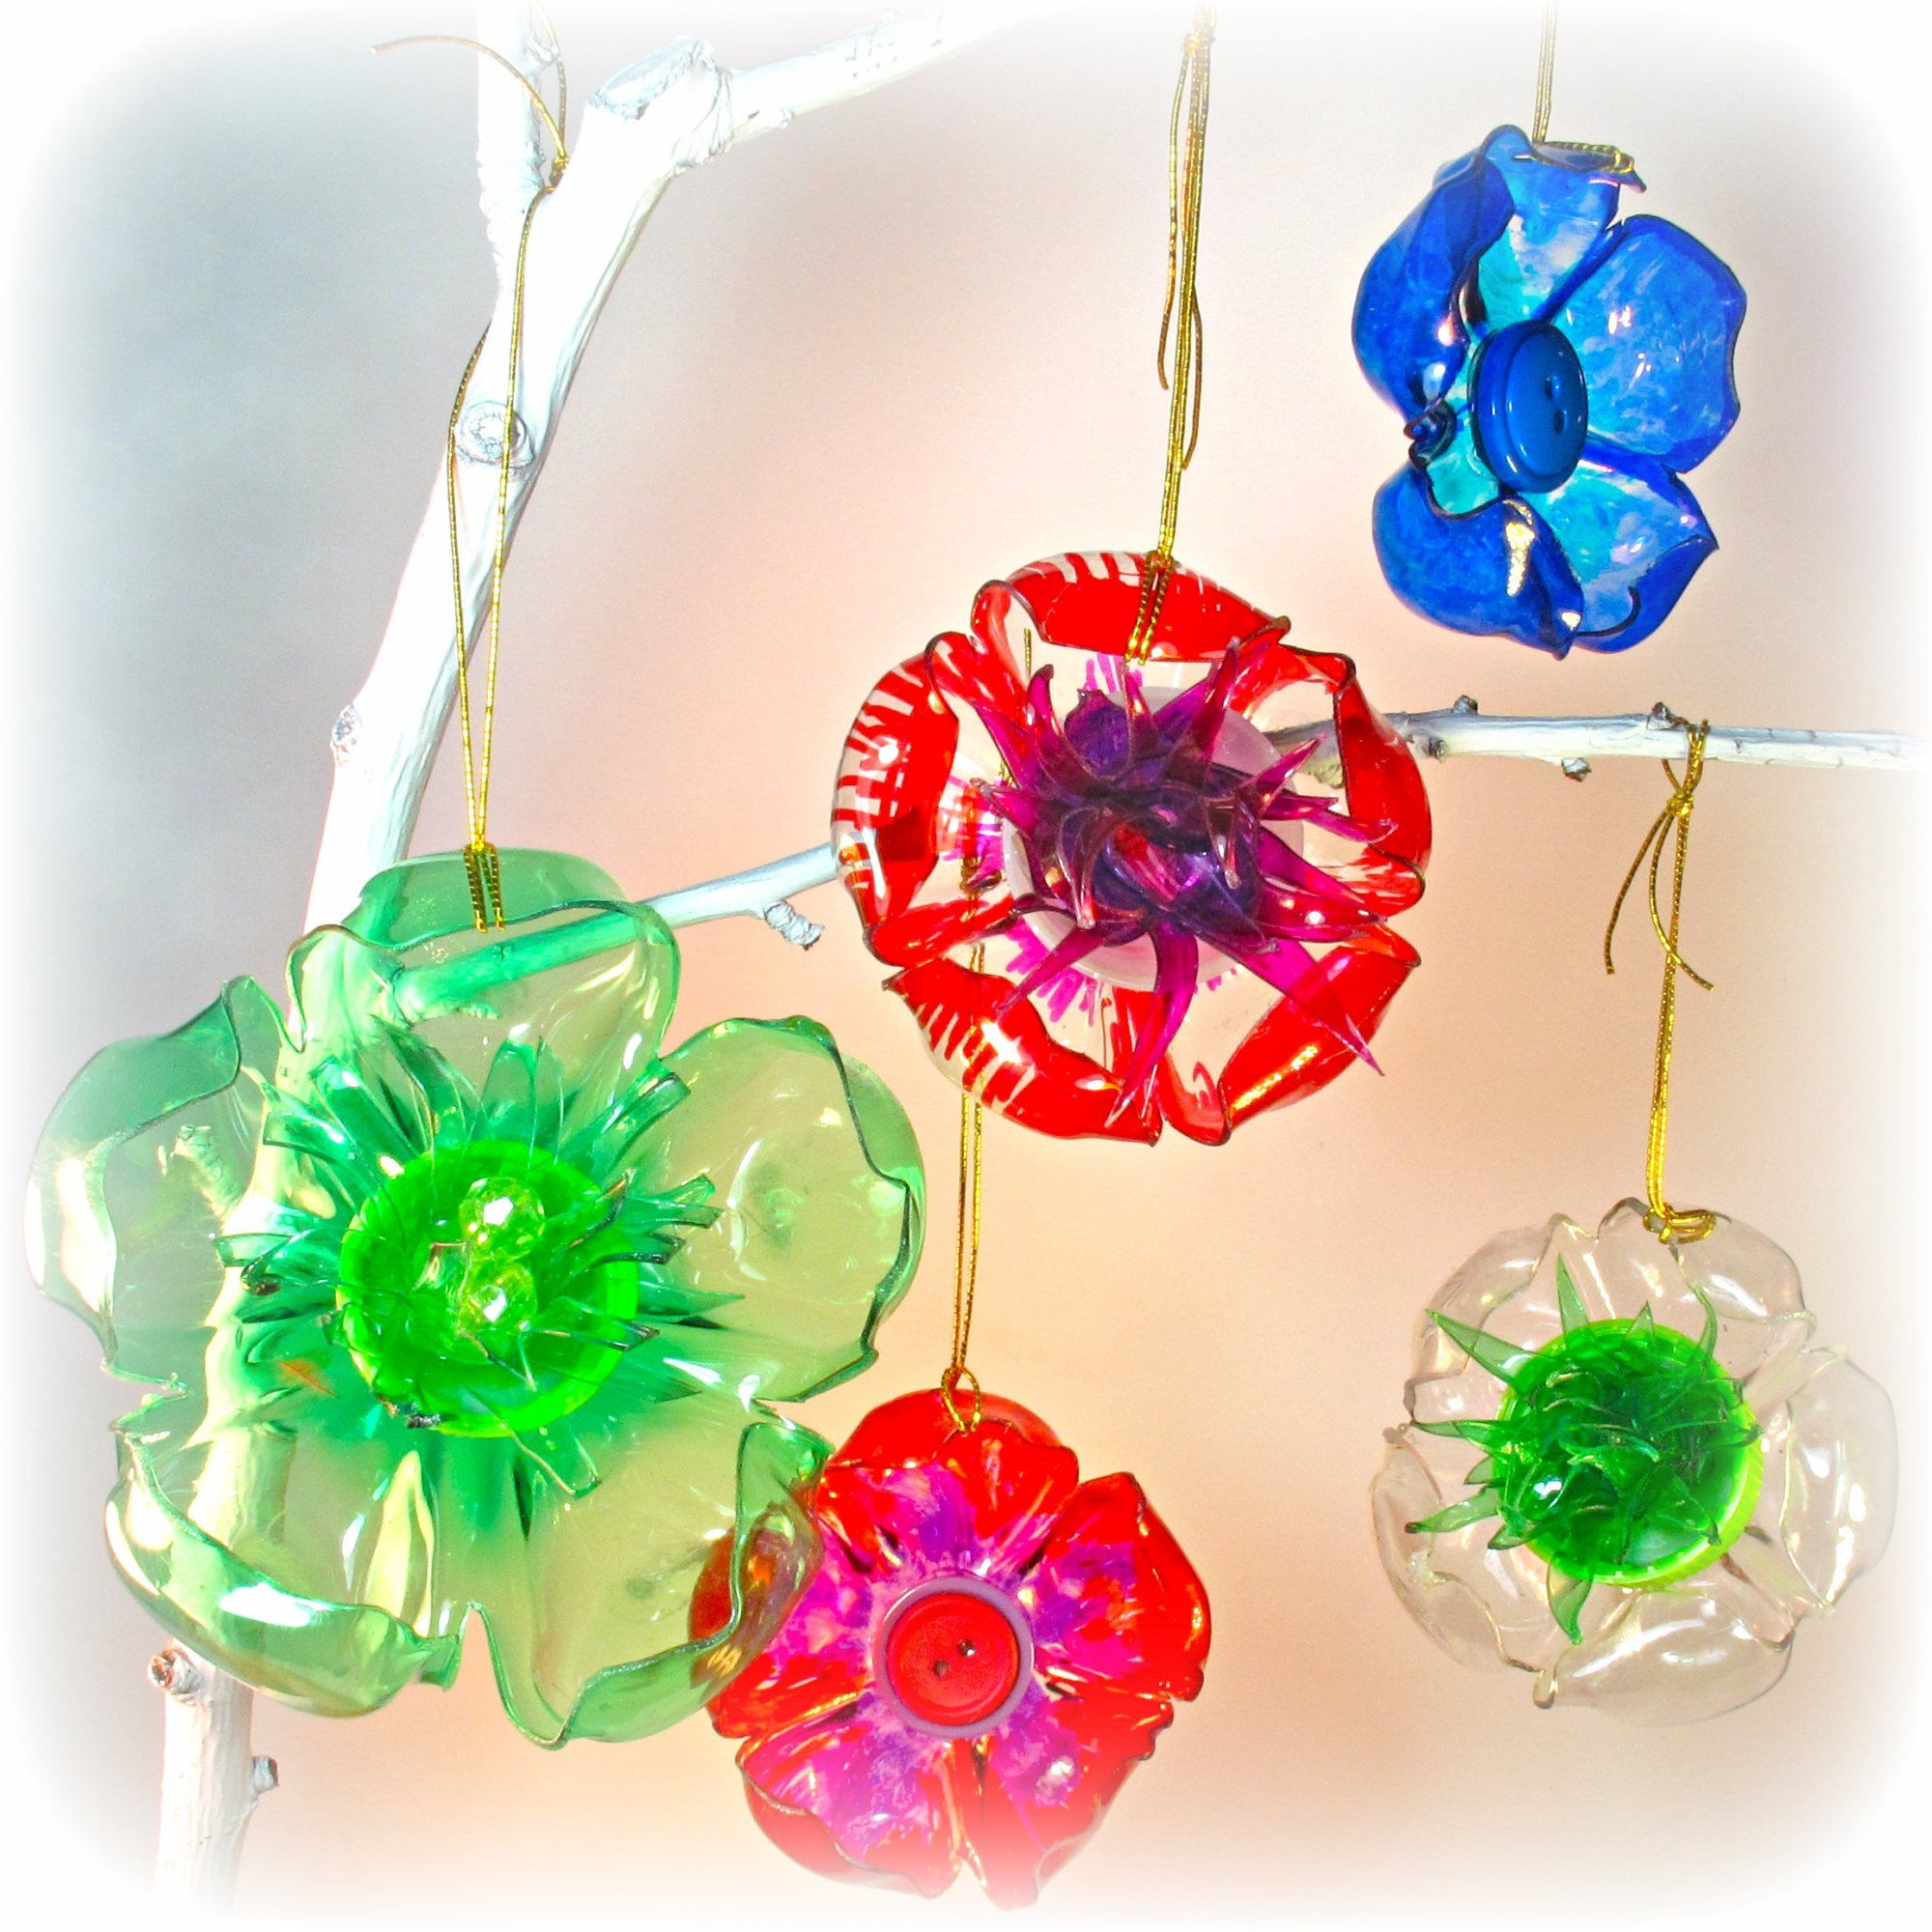 Diy Lamp Made Out Of Recycled Plastic Bottles And Glitter Paper Crafts Ideas Best Waste Transformed To Lovely